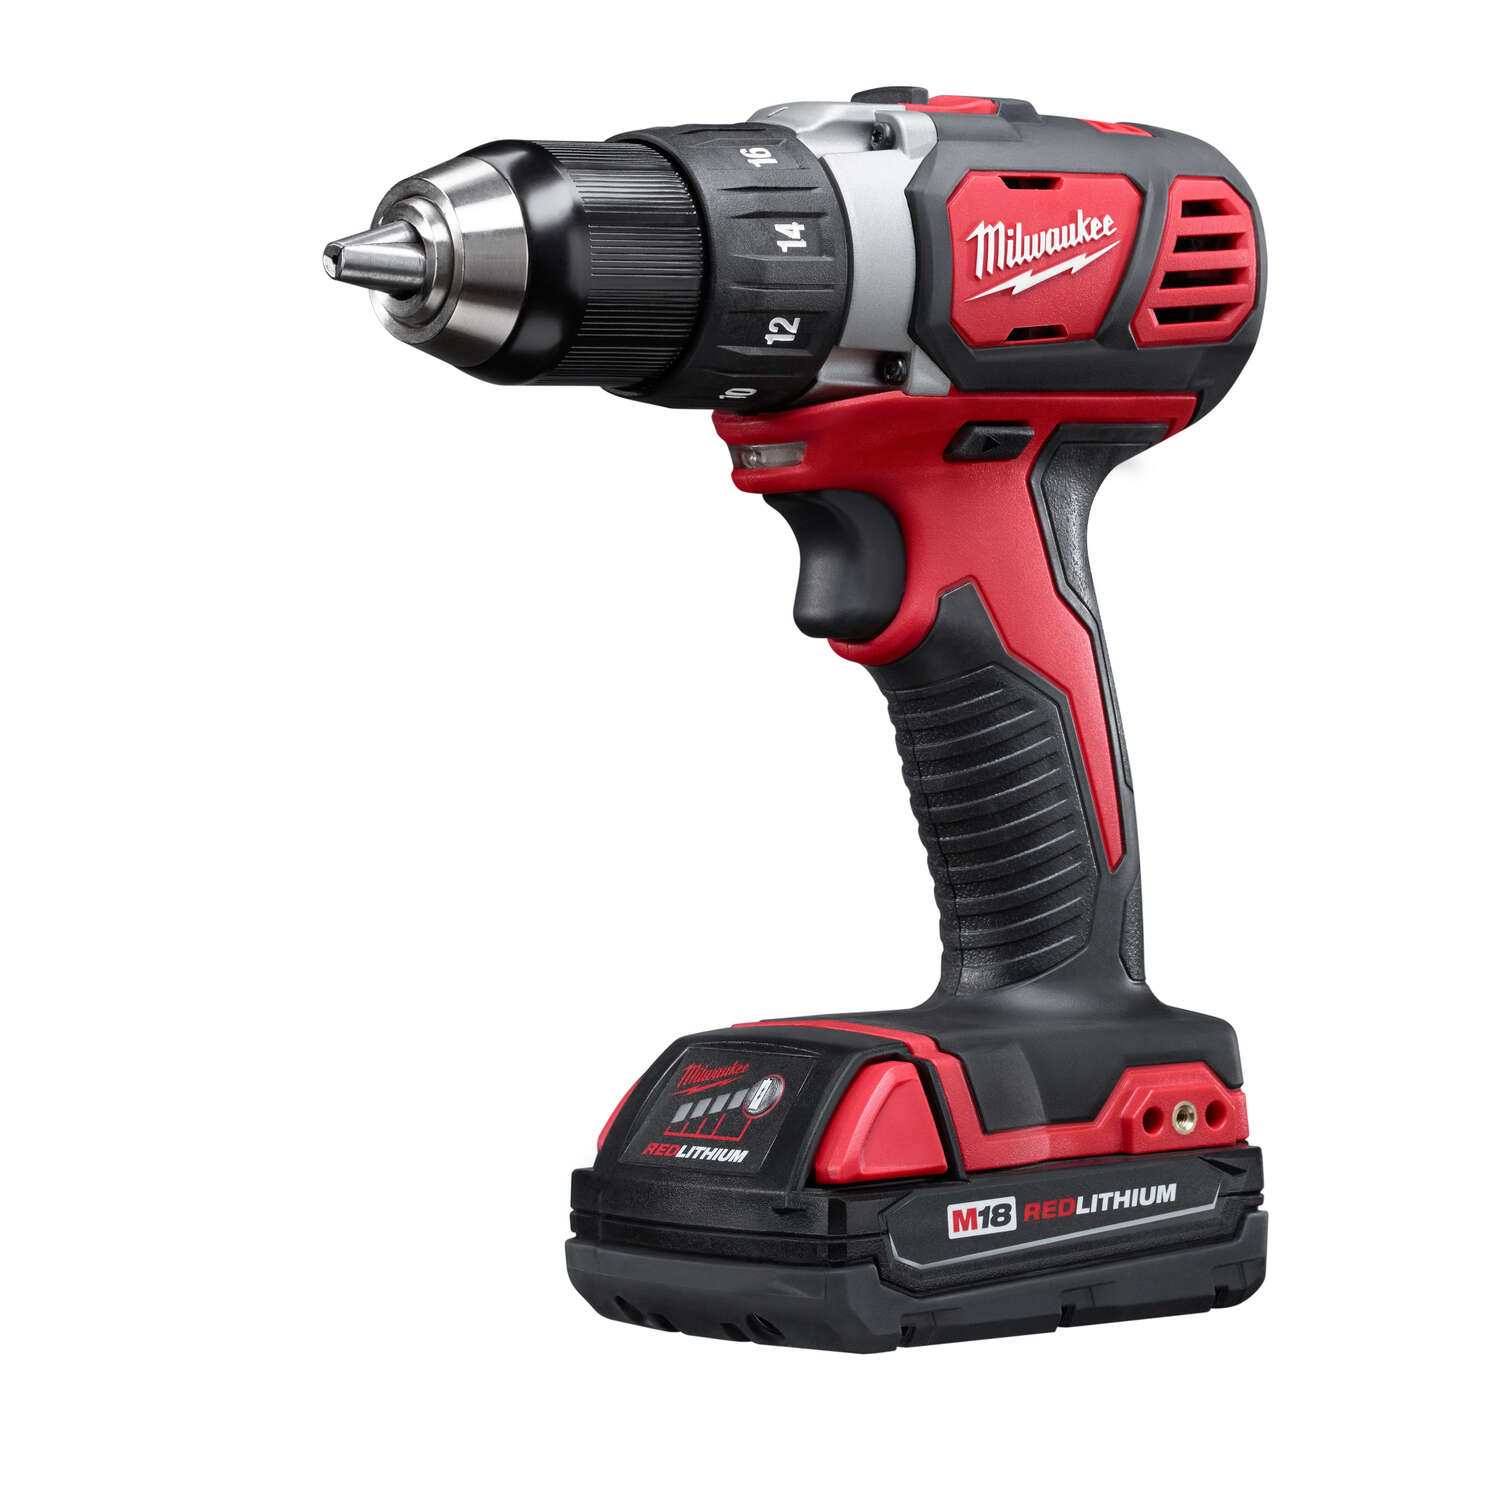 Milwaukee M18 Cordless Compact Drill/Driver 18 volts 2 Speed 0-400/0-1,800 rpm 1/2 in.   Li-Ion